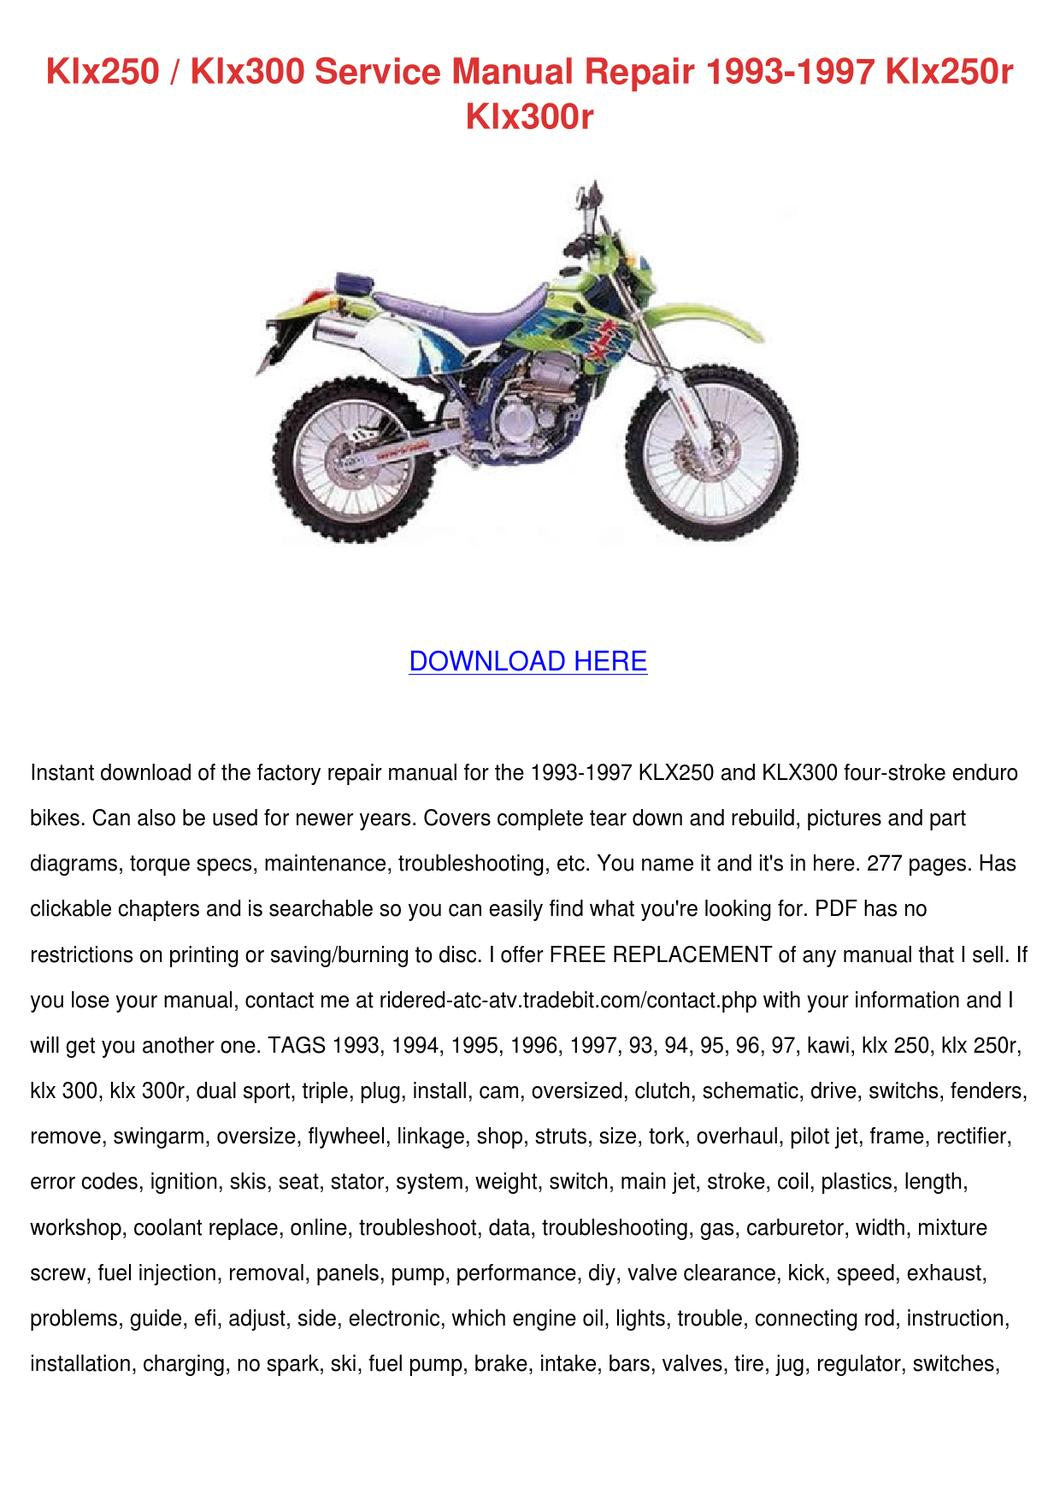 Klx250 Klx300 Service Manual Repair 1993 1997 By Mindy Lufsey Issuu